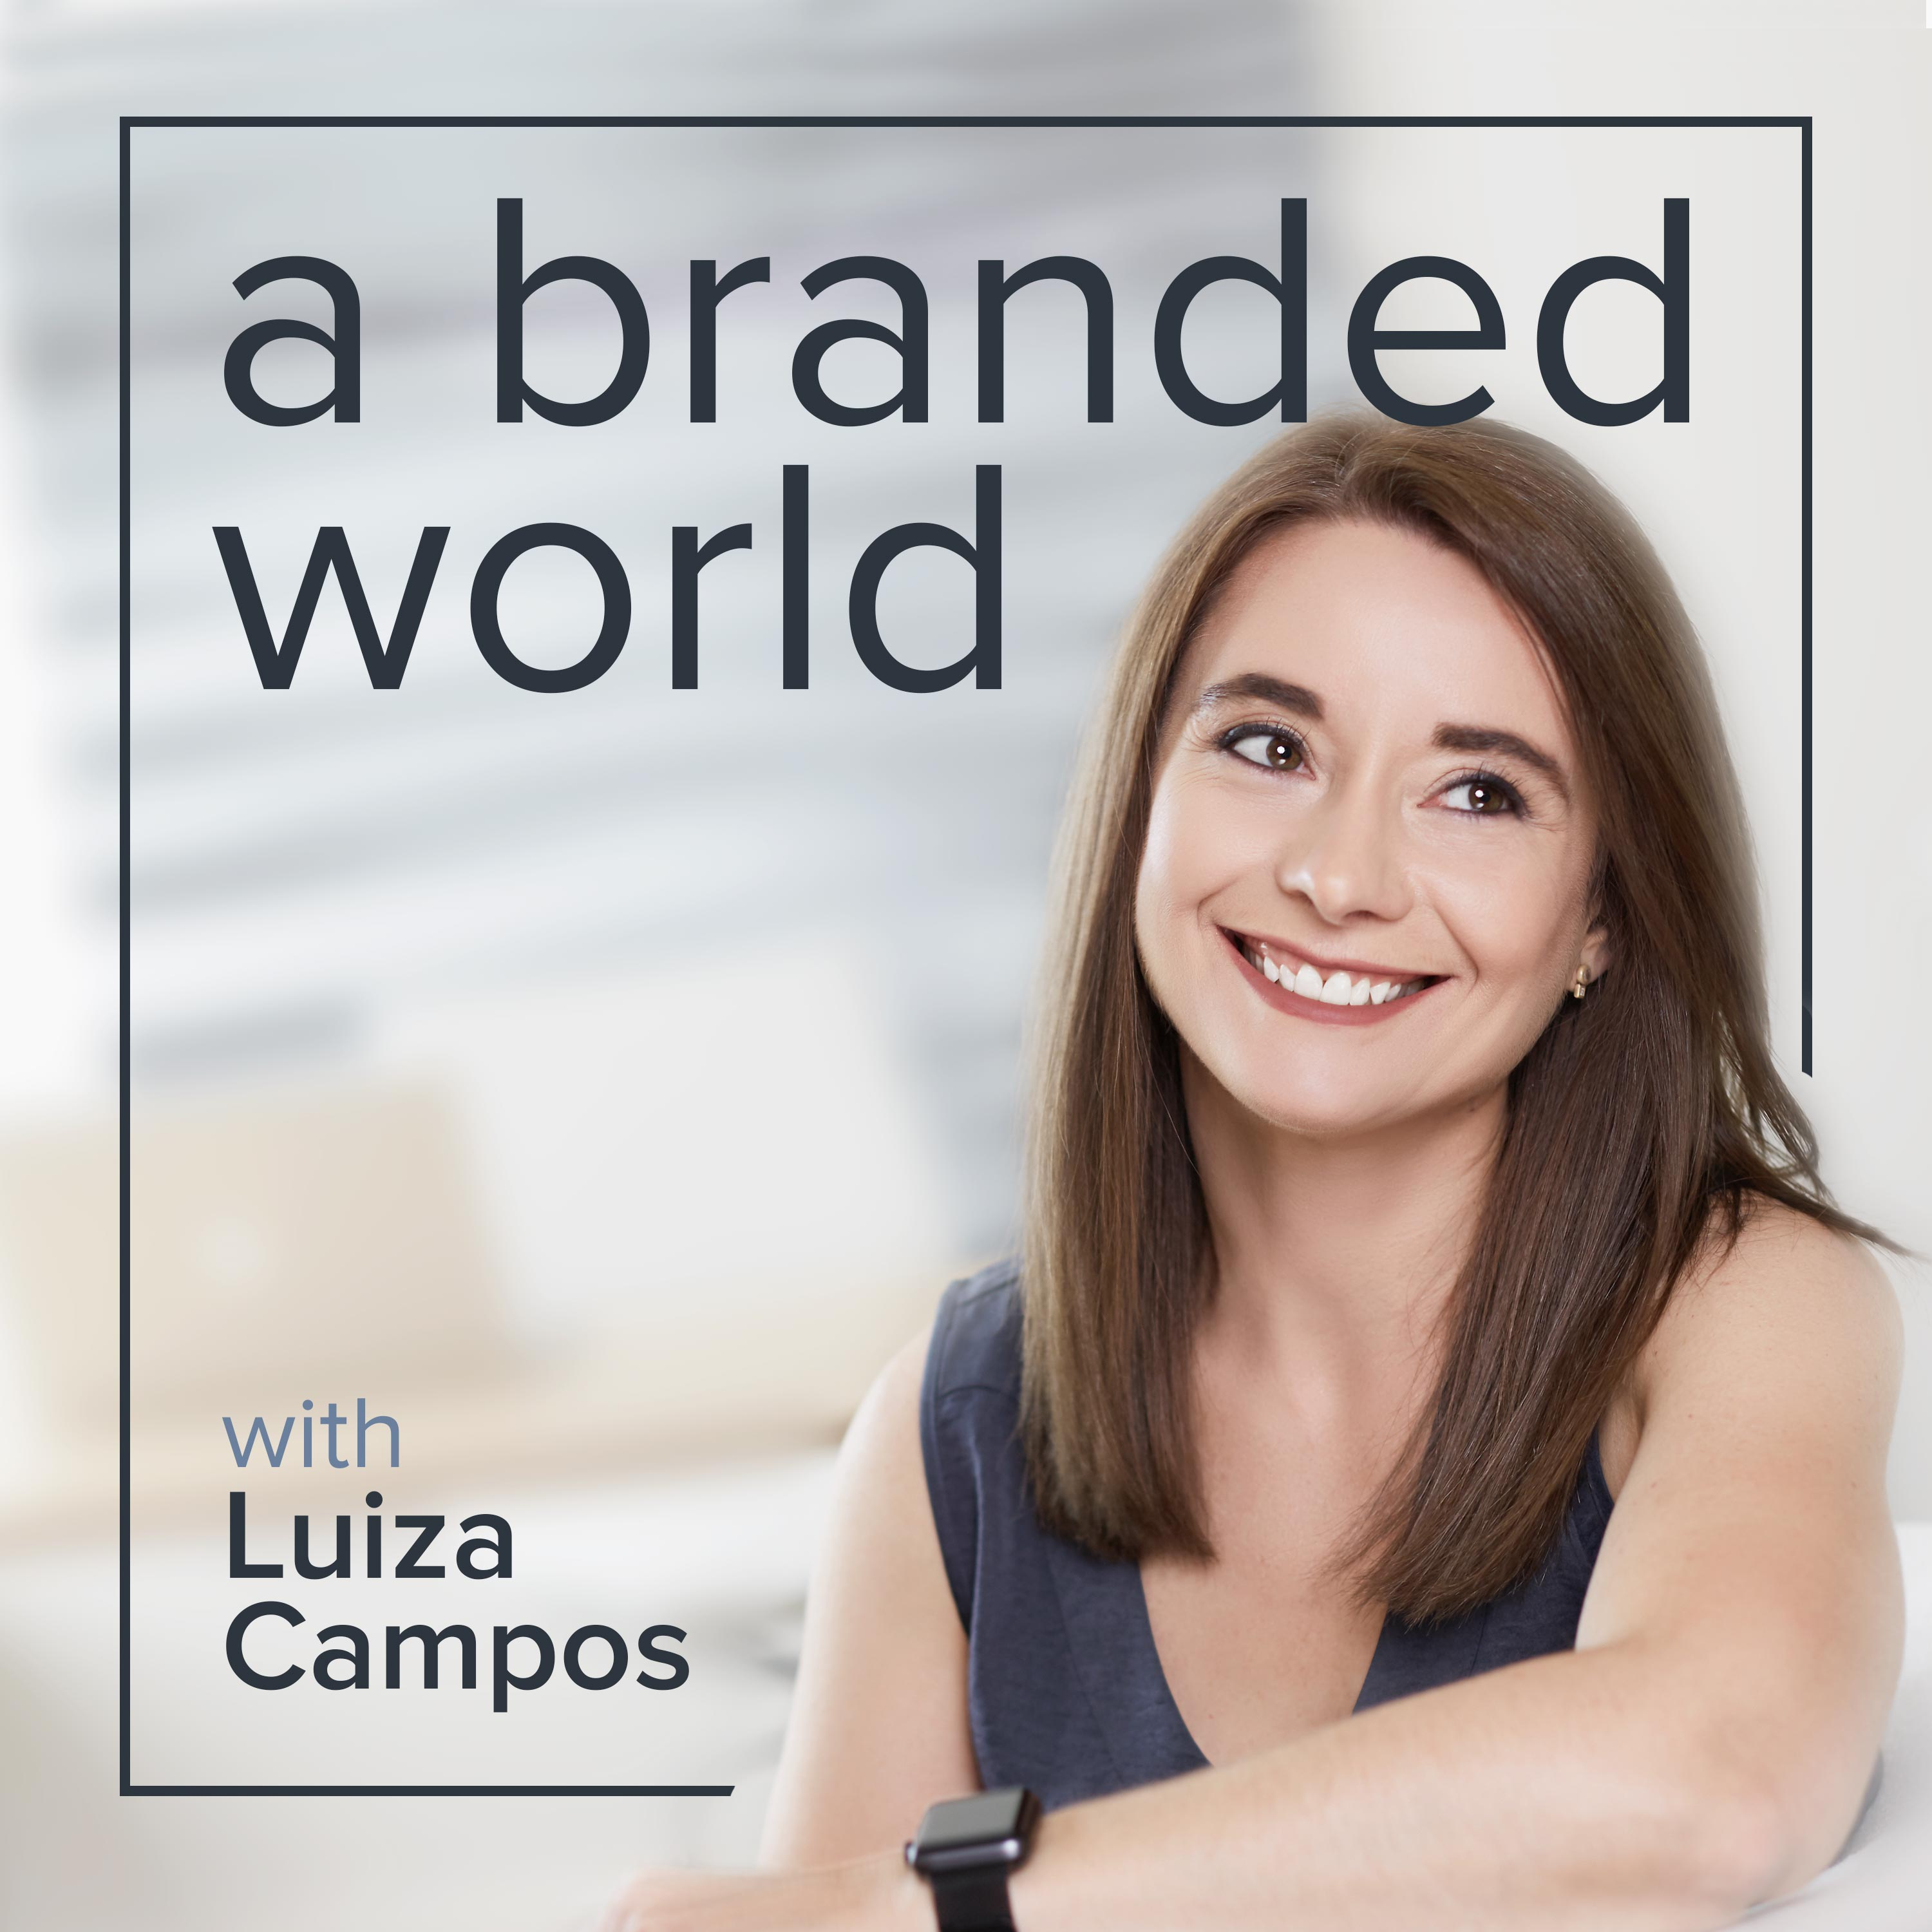 a branded world: Branding made easy. A podcast where we explore great brands and learn how to build a powerful brand. show art